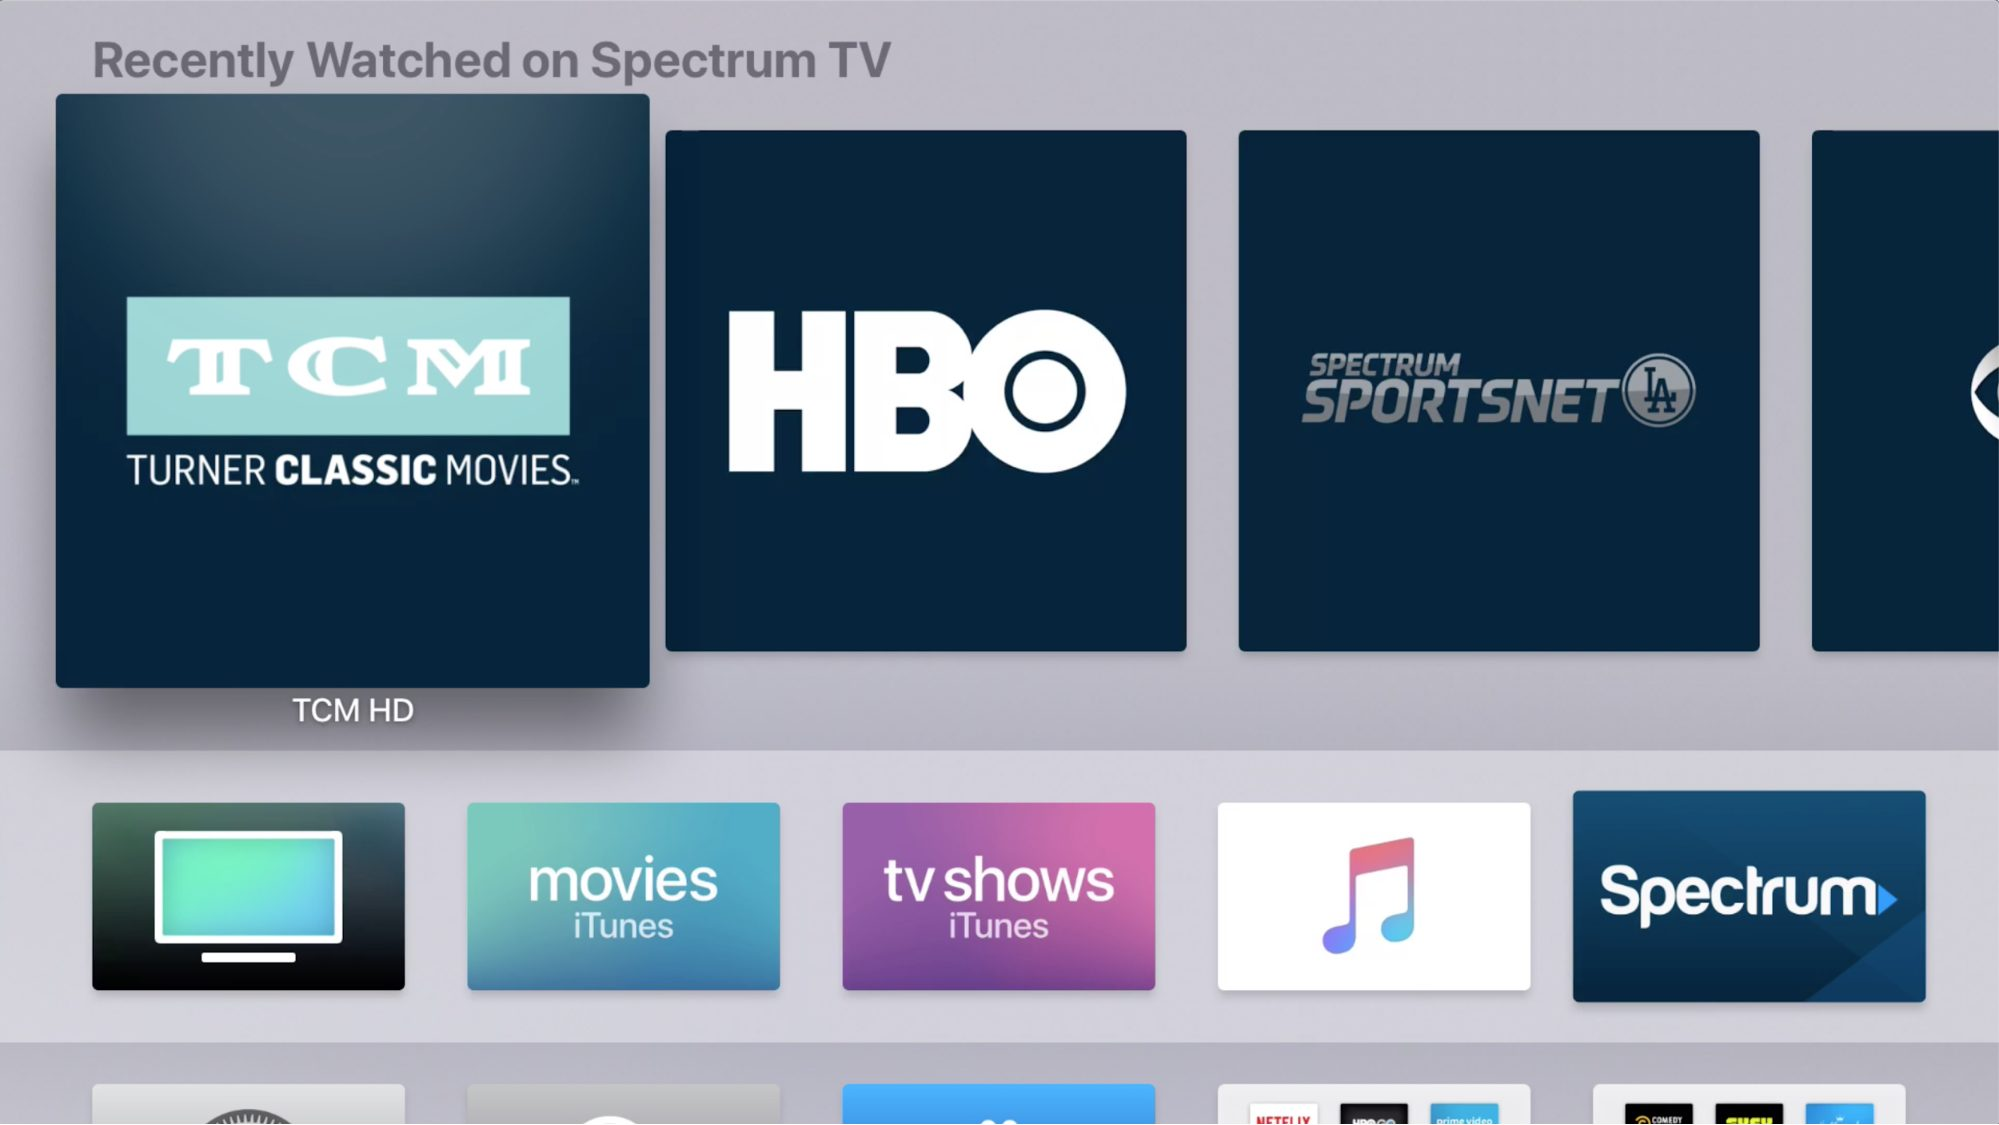 Enjoy Up to 250 Live Channels and 30,000 On-Demand TV Shows and Movies with the Spectrum TV App